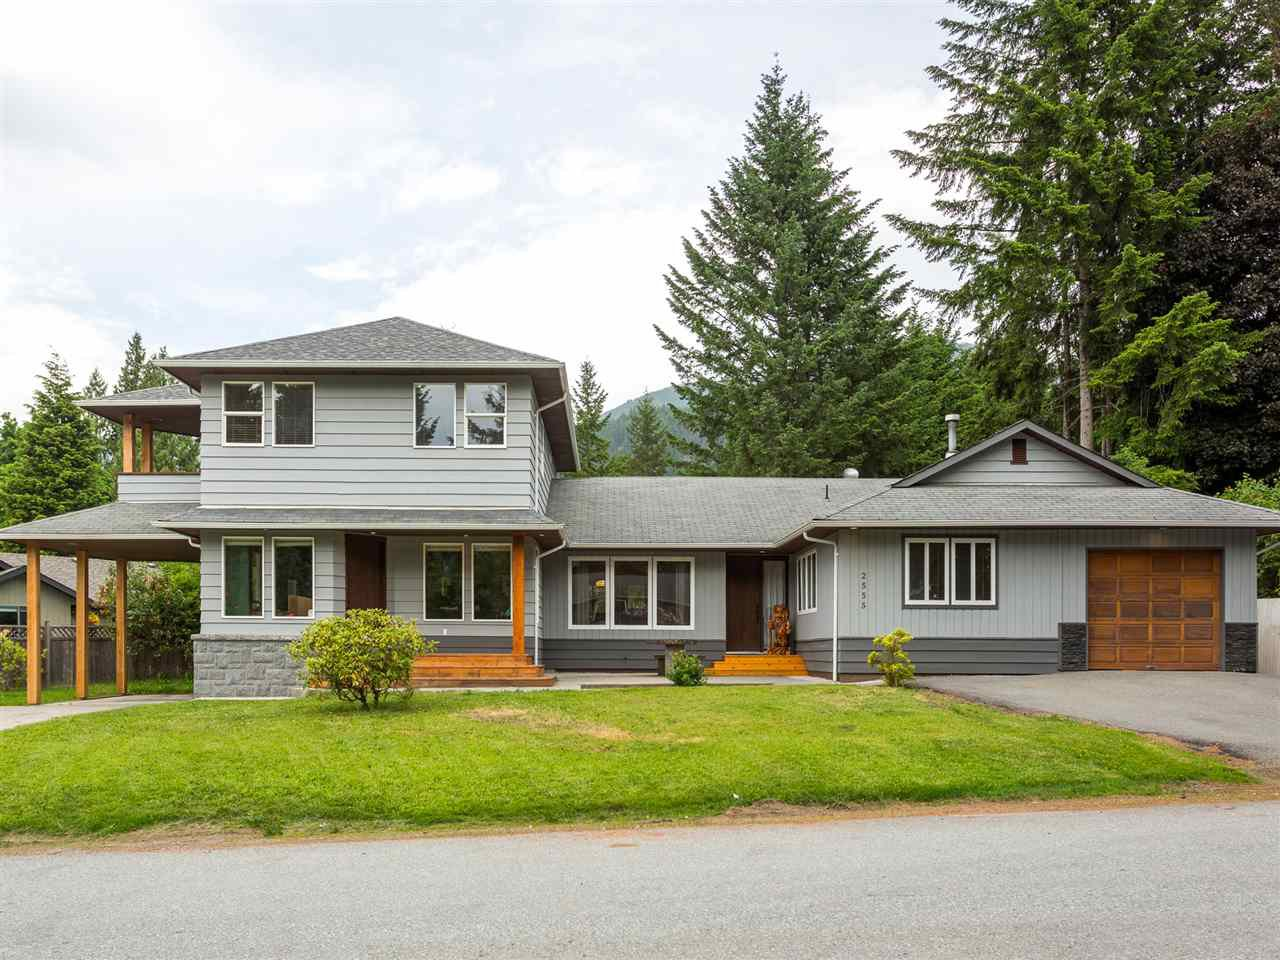 Main Photo: 2555 JURA Crescent in Squamish: Garibaldi Highlands House for sale : MLS®# R2176752